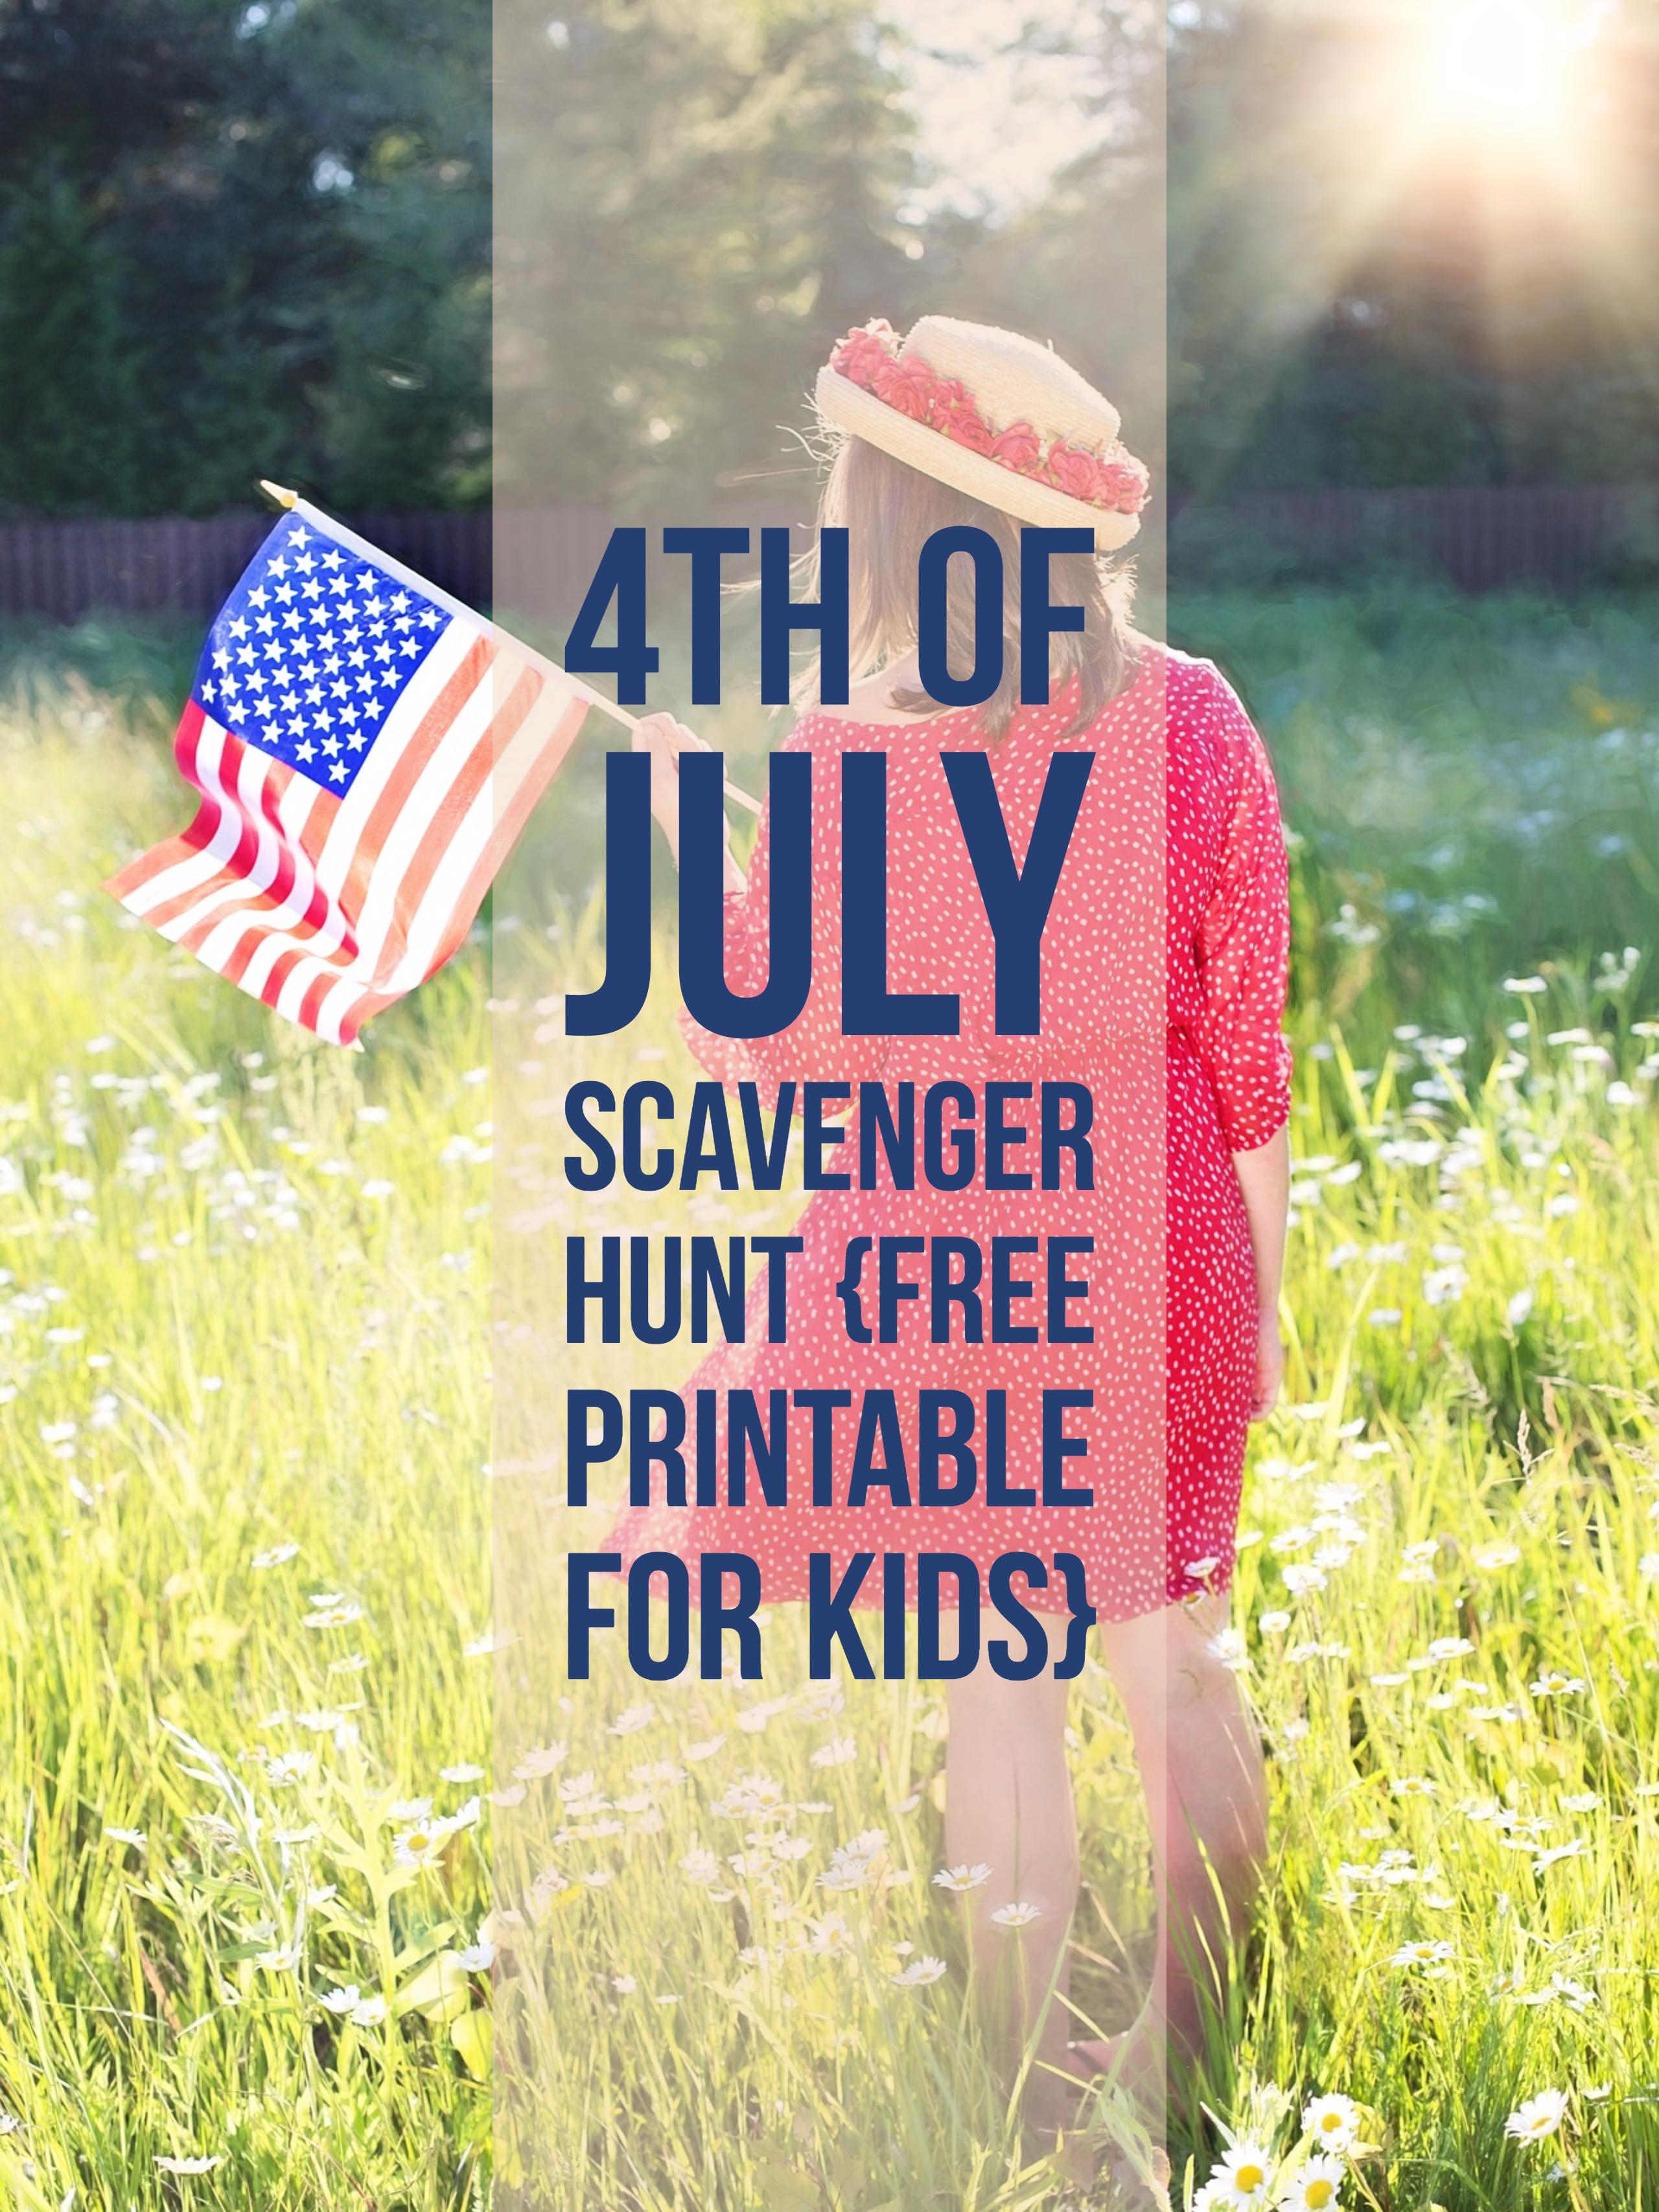 4th of July Scavenger Hunt for Kids from Food Fun Family